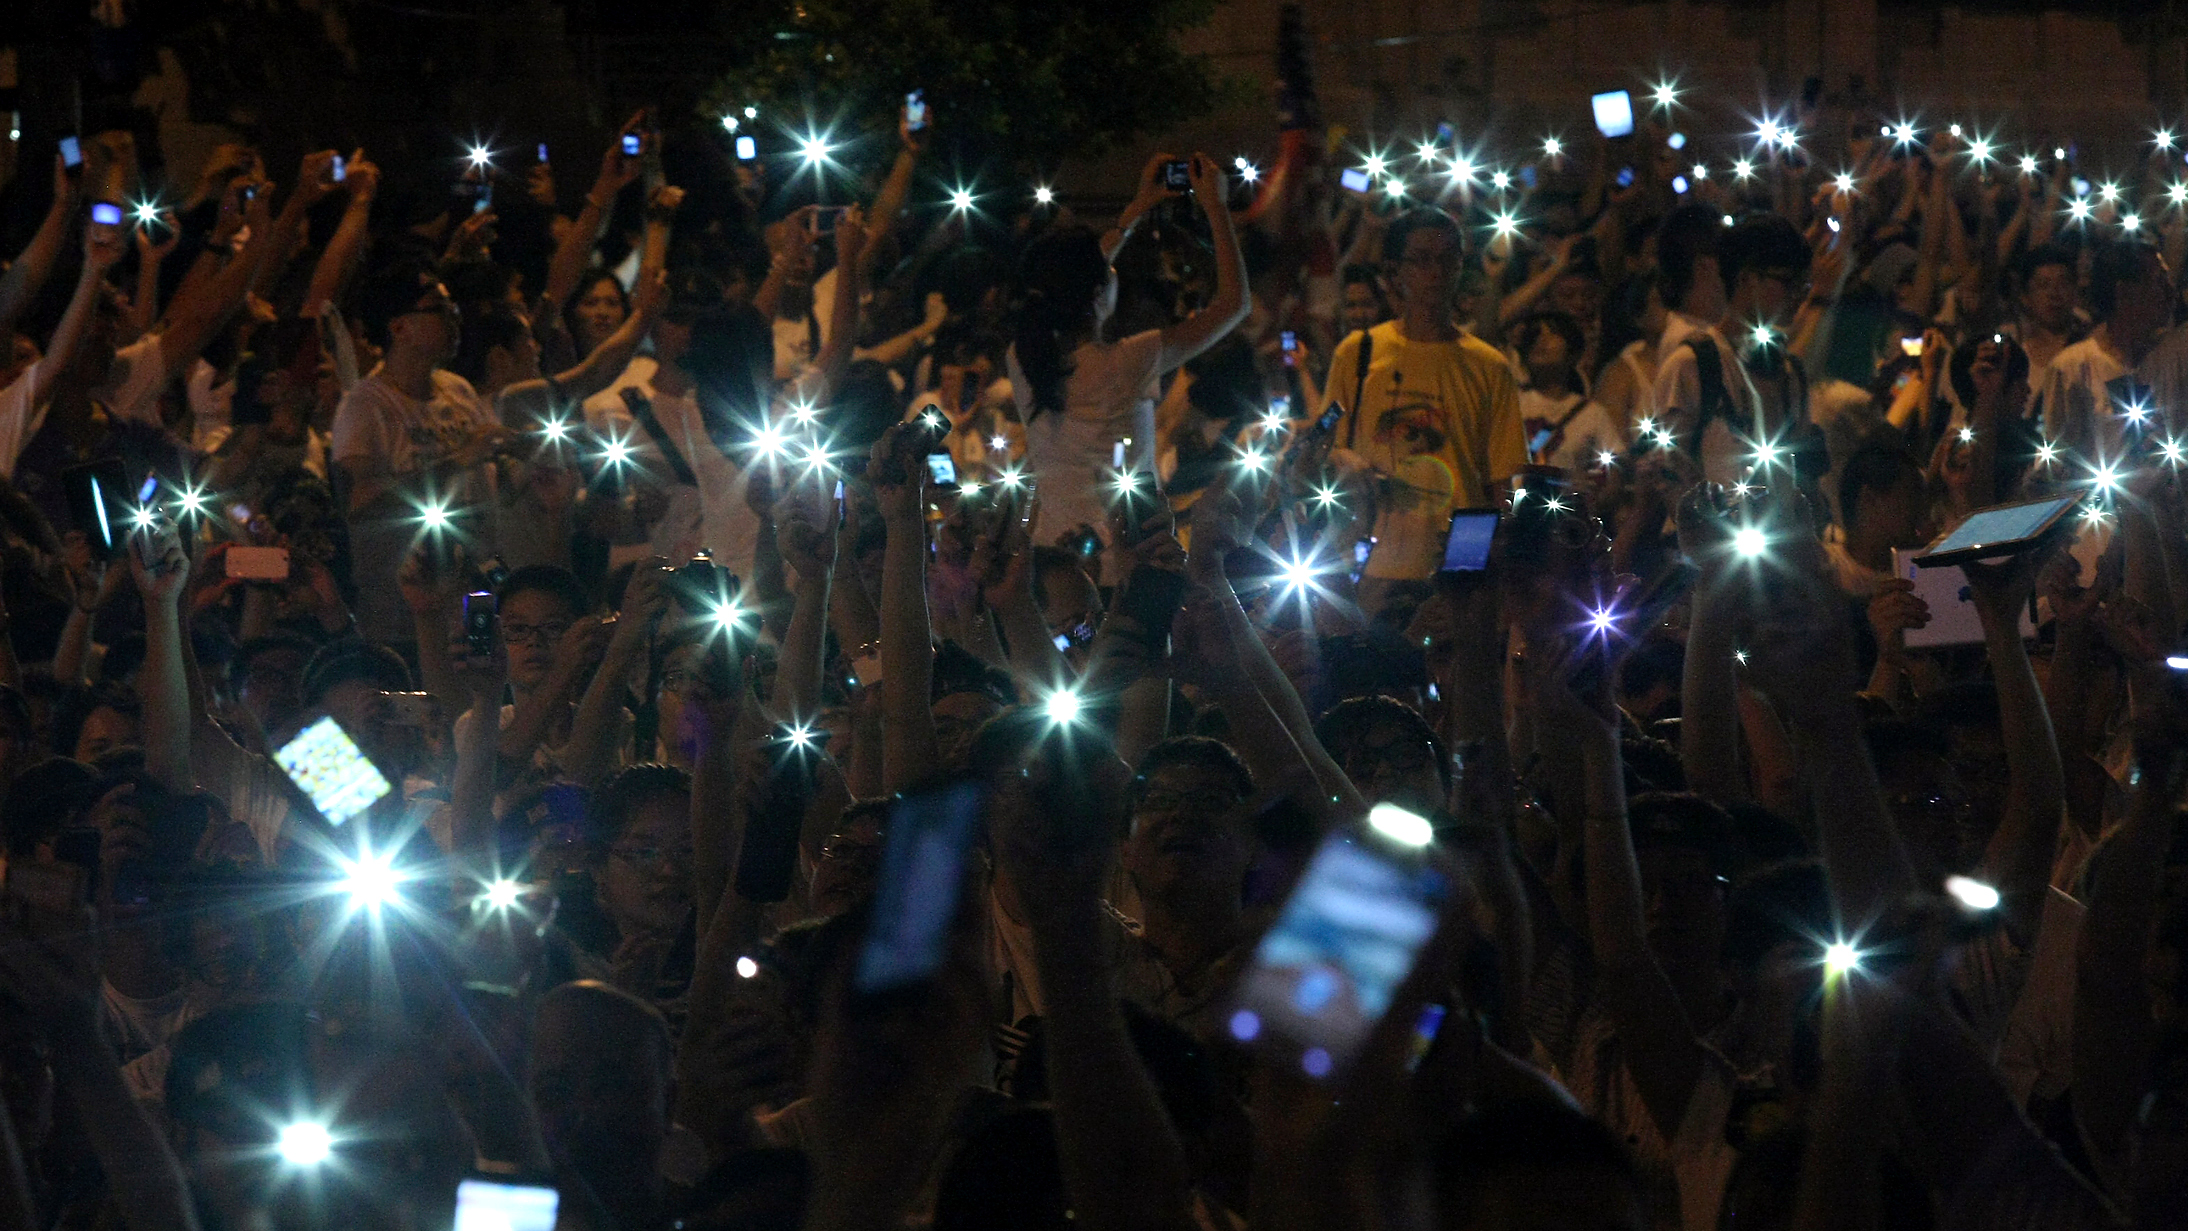 People wave cell phones as they take part in a demonstration in front of the Presidential Office in Taipei August 3, 2013. Hundreds of thousands of demonstrators gathered on Saturday to mourn for soldier Hung Chung-chiu, who died of organ failure after suffering a heatstroke caused from performing punishment exercises on July 4, and to demand further investigation into Hung's case, according to event organizers.